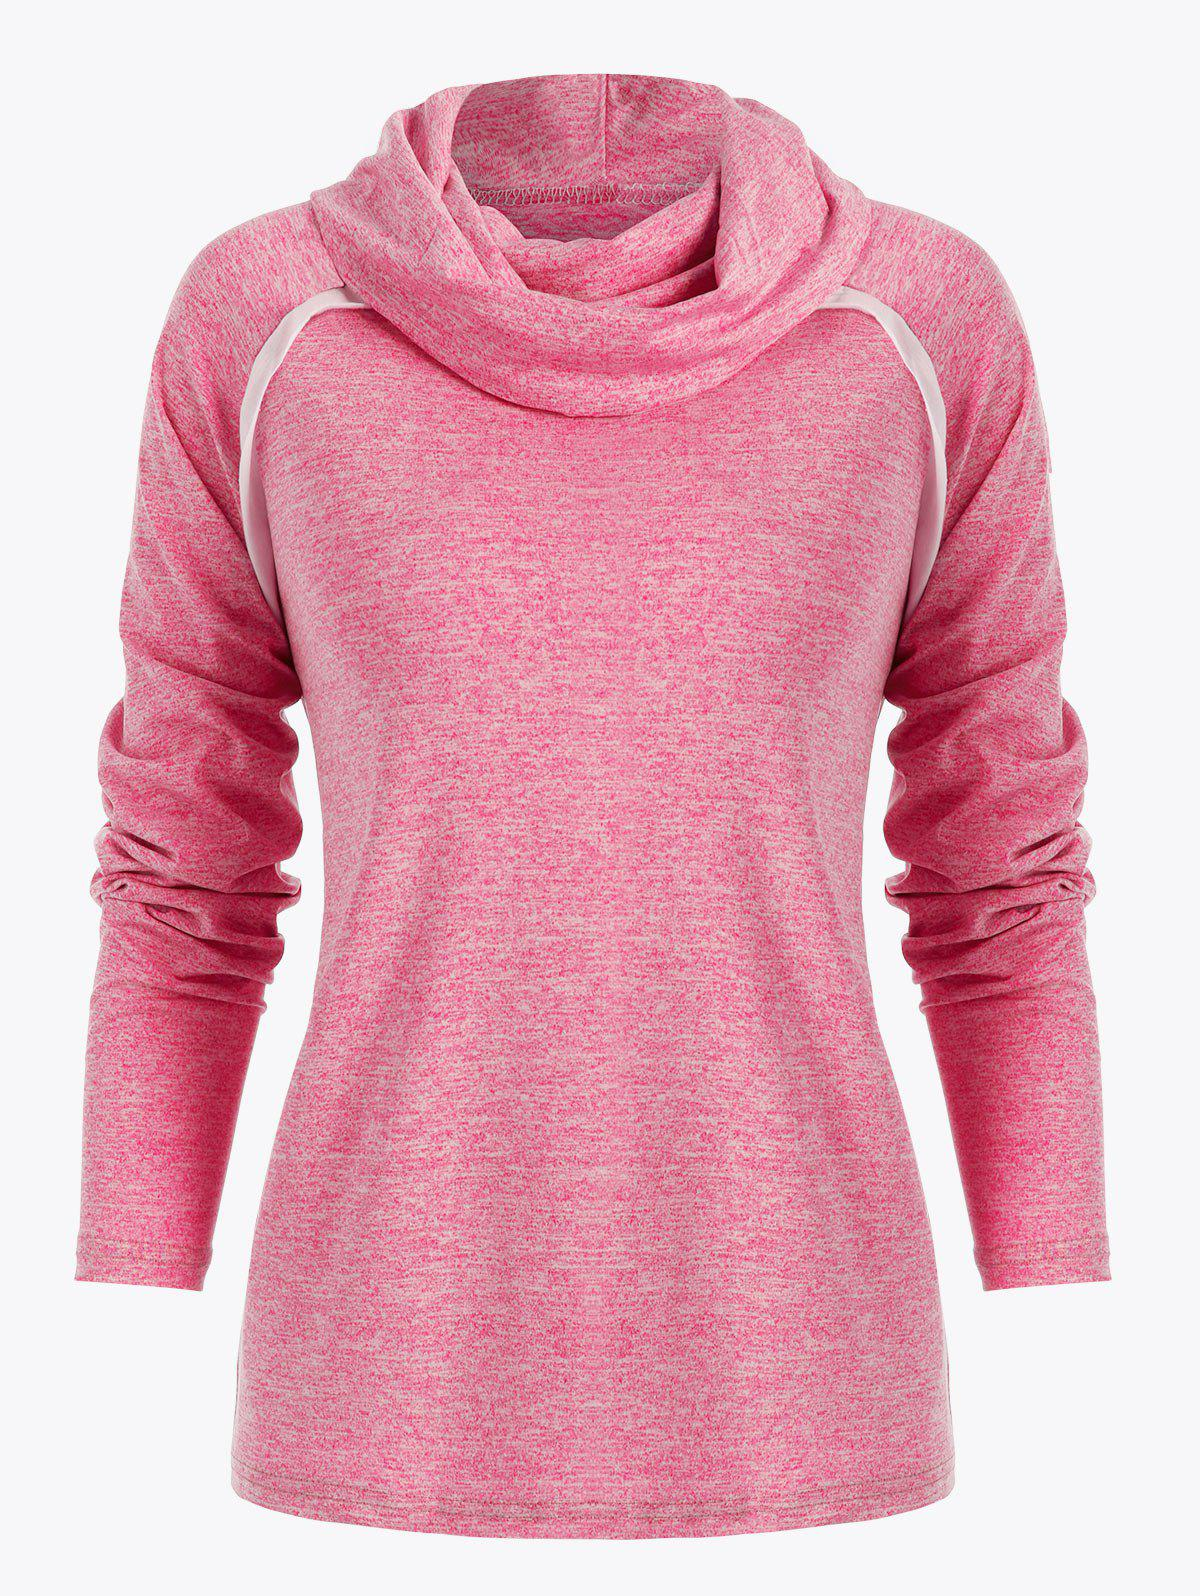 Hot Cowl Neck Contrast Color Marled T Shirt